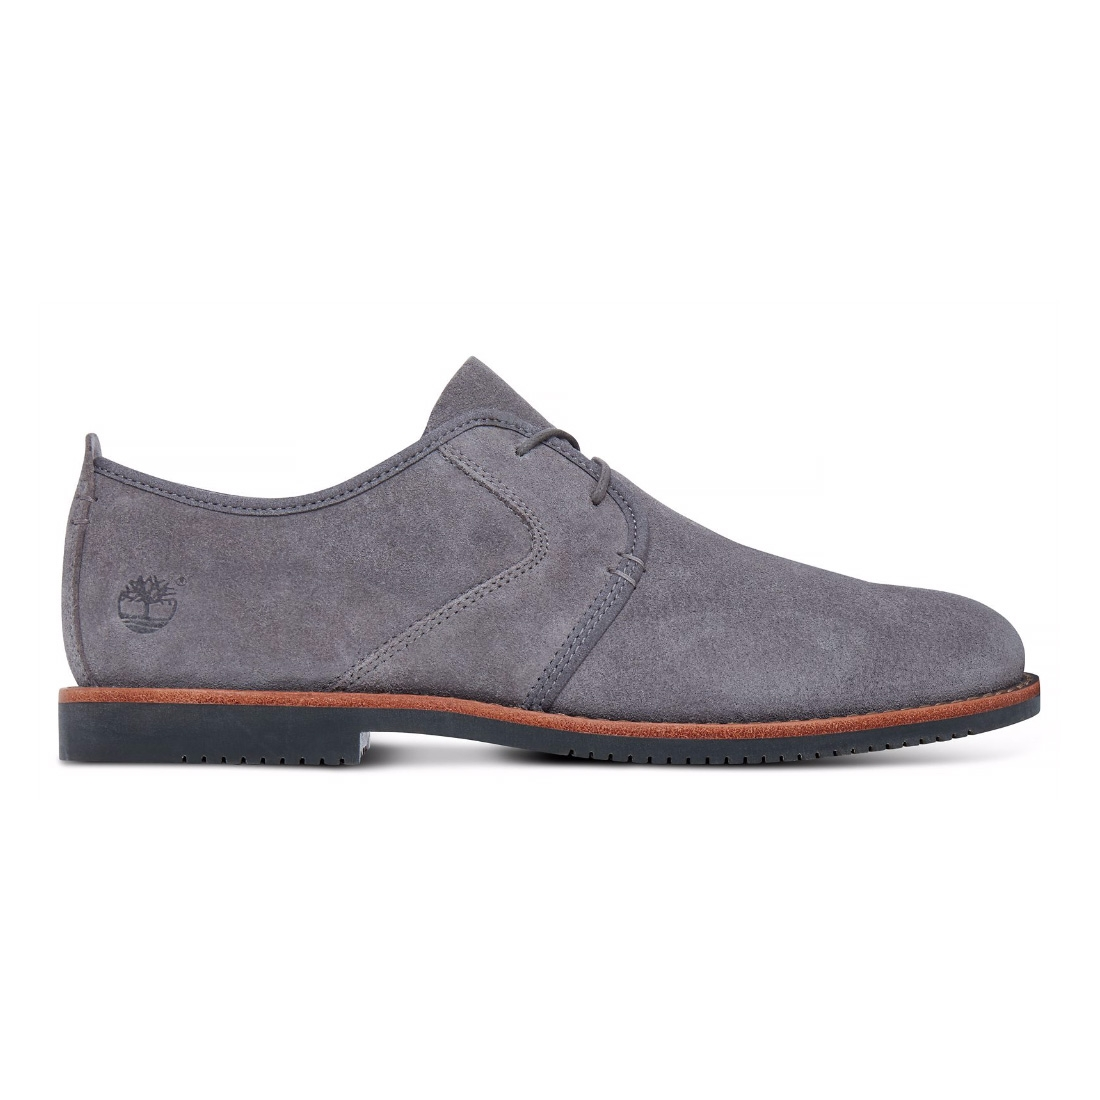 Image of Timberland Brooklyn Park Oxford Shoes (Men's) Steeple Grey Hammer II